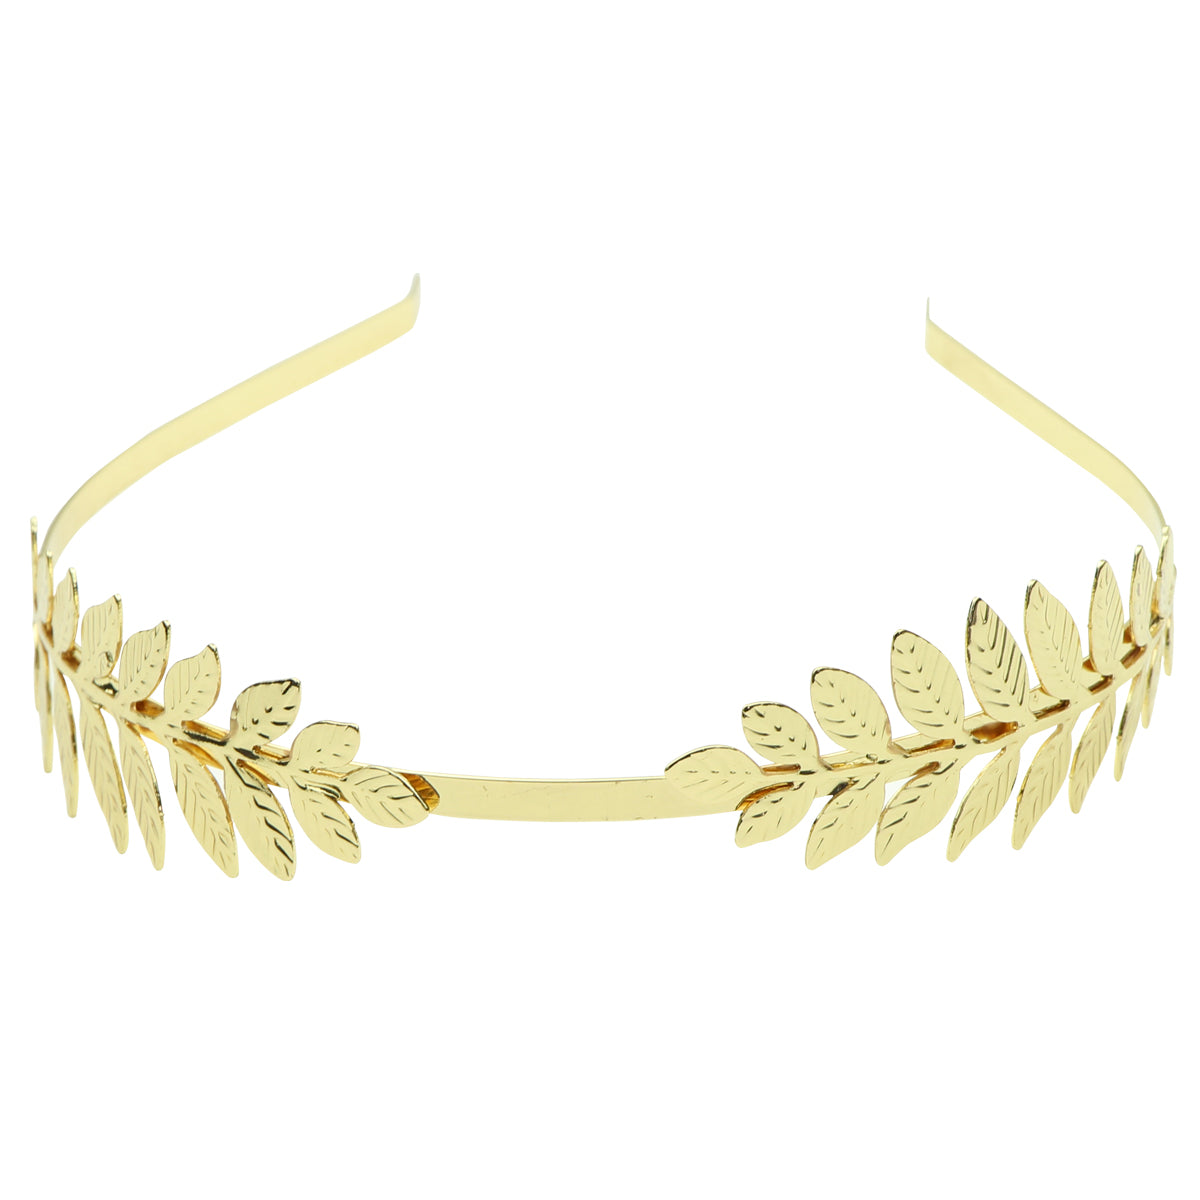 Metallic gold leaves hair headbands wholesale women hair accessories 0929 - SOHOBUCKS CO.,LIMITED